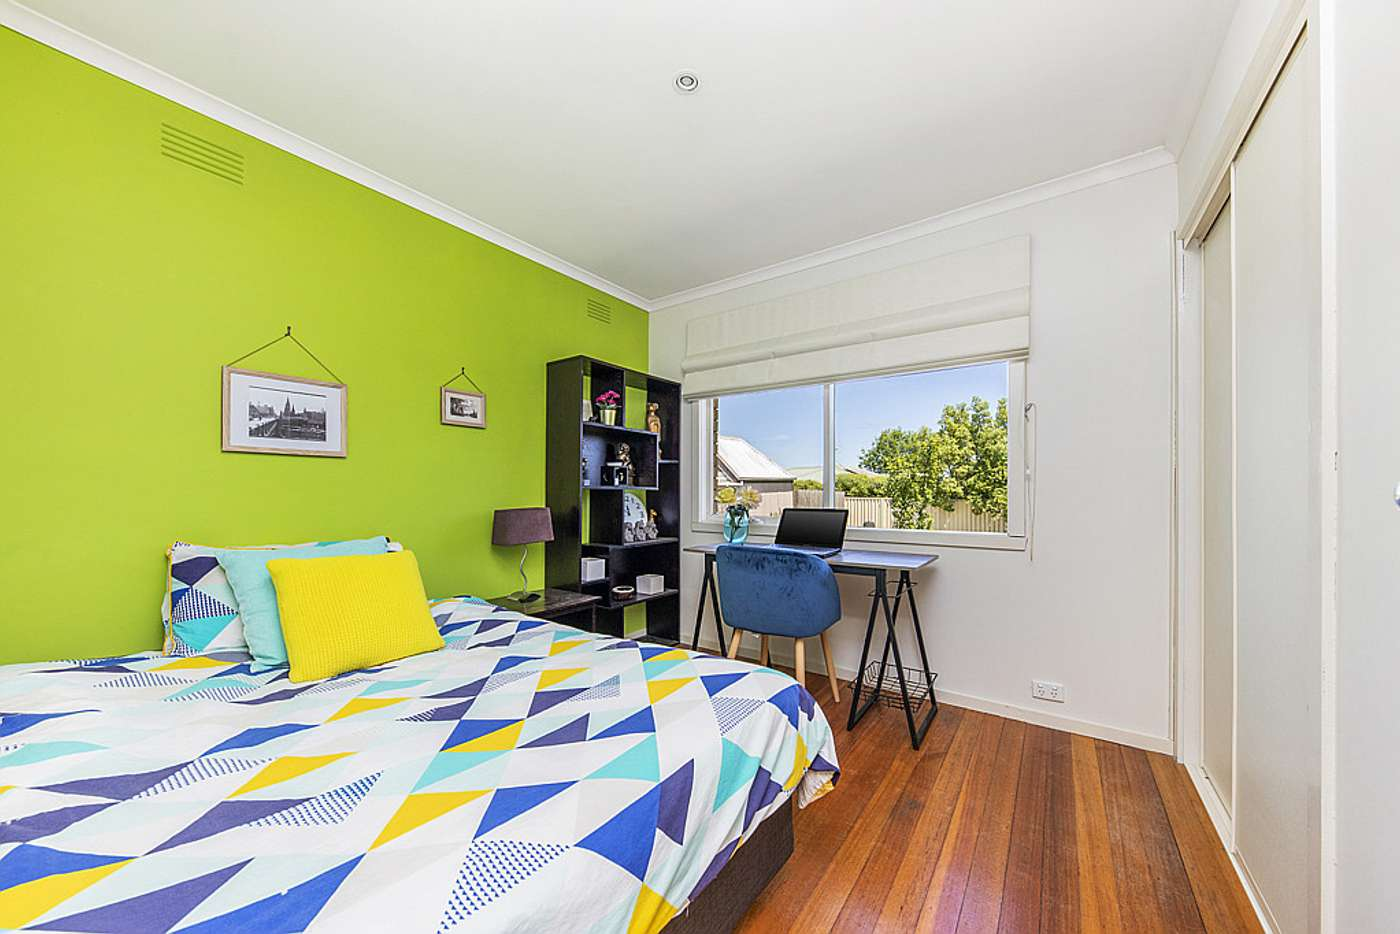 Seventh view of Homely house listing, 4 Farrell Street, New Gisborne VIC 3438